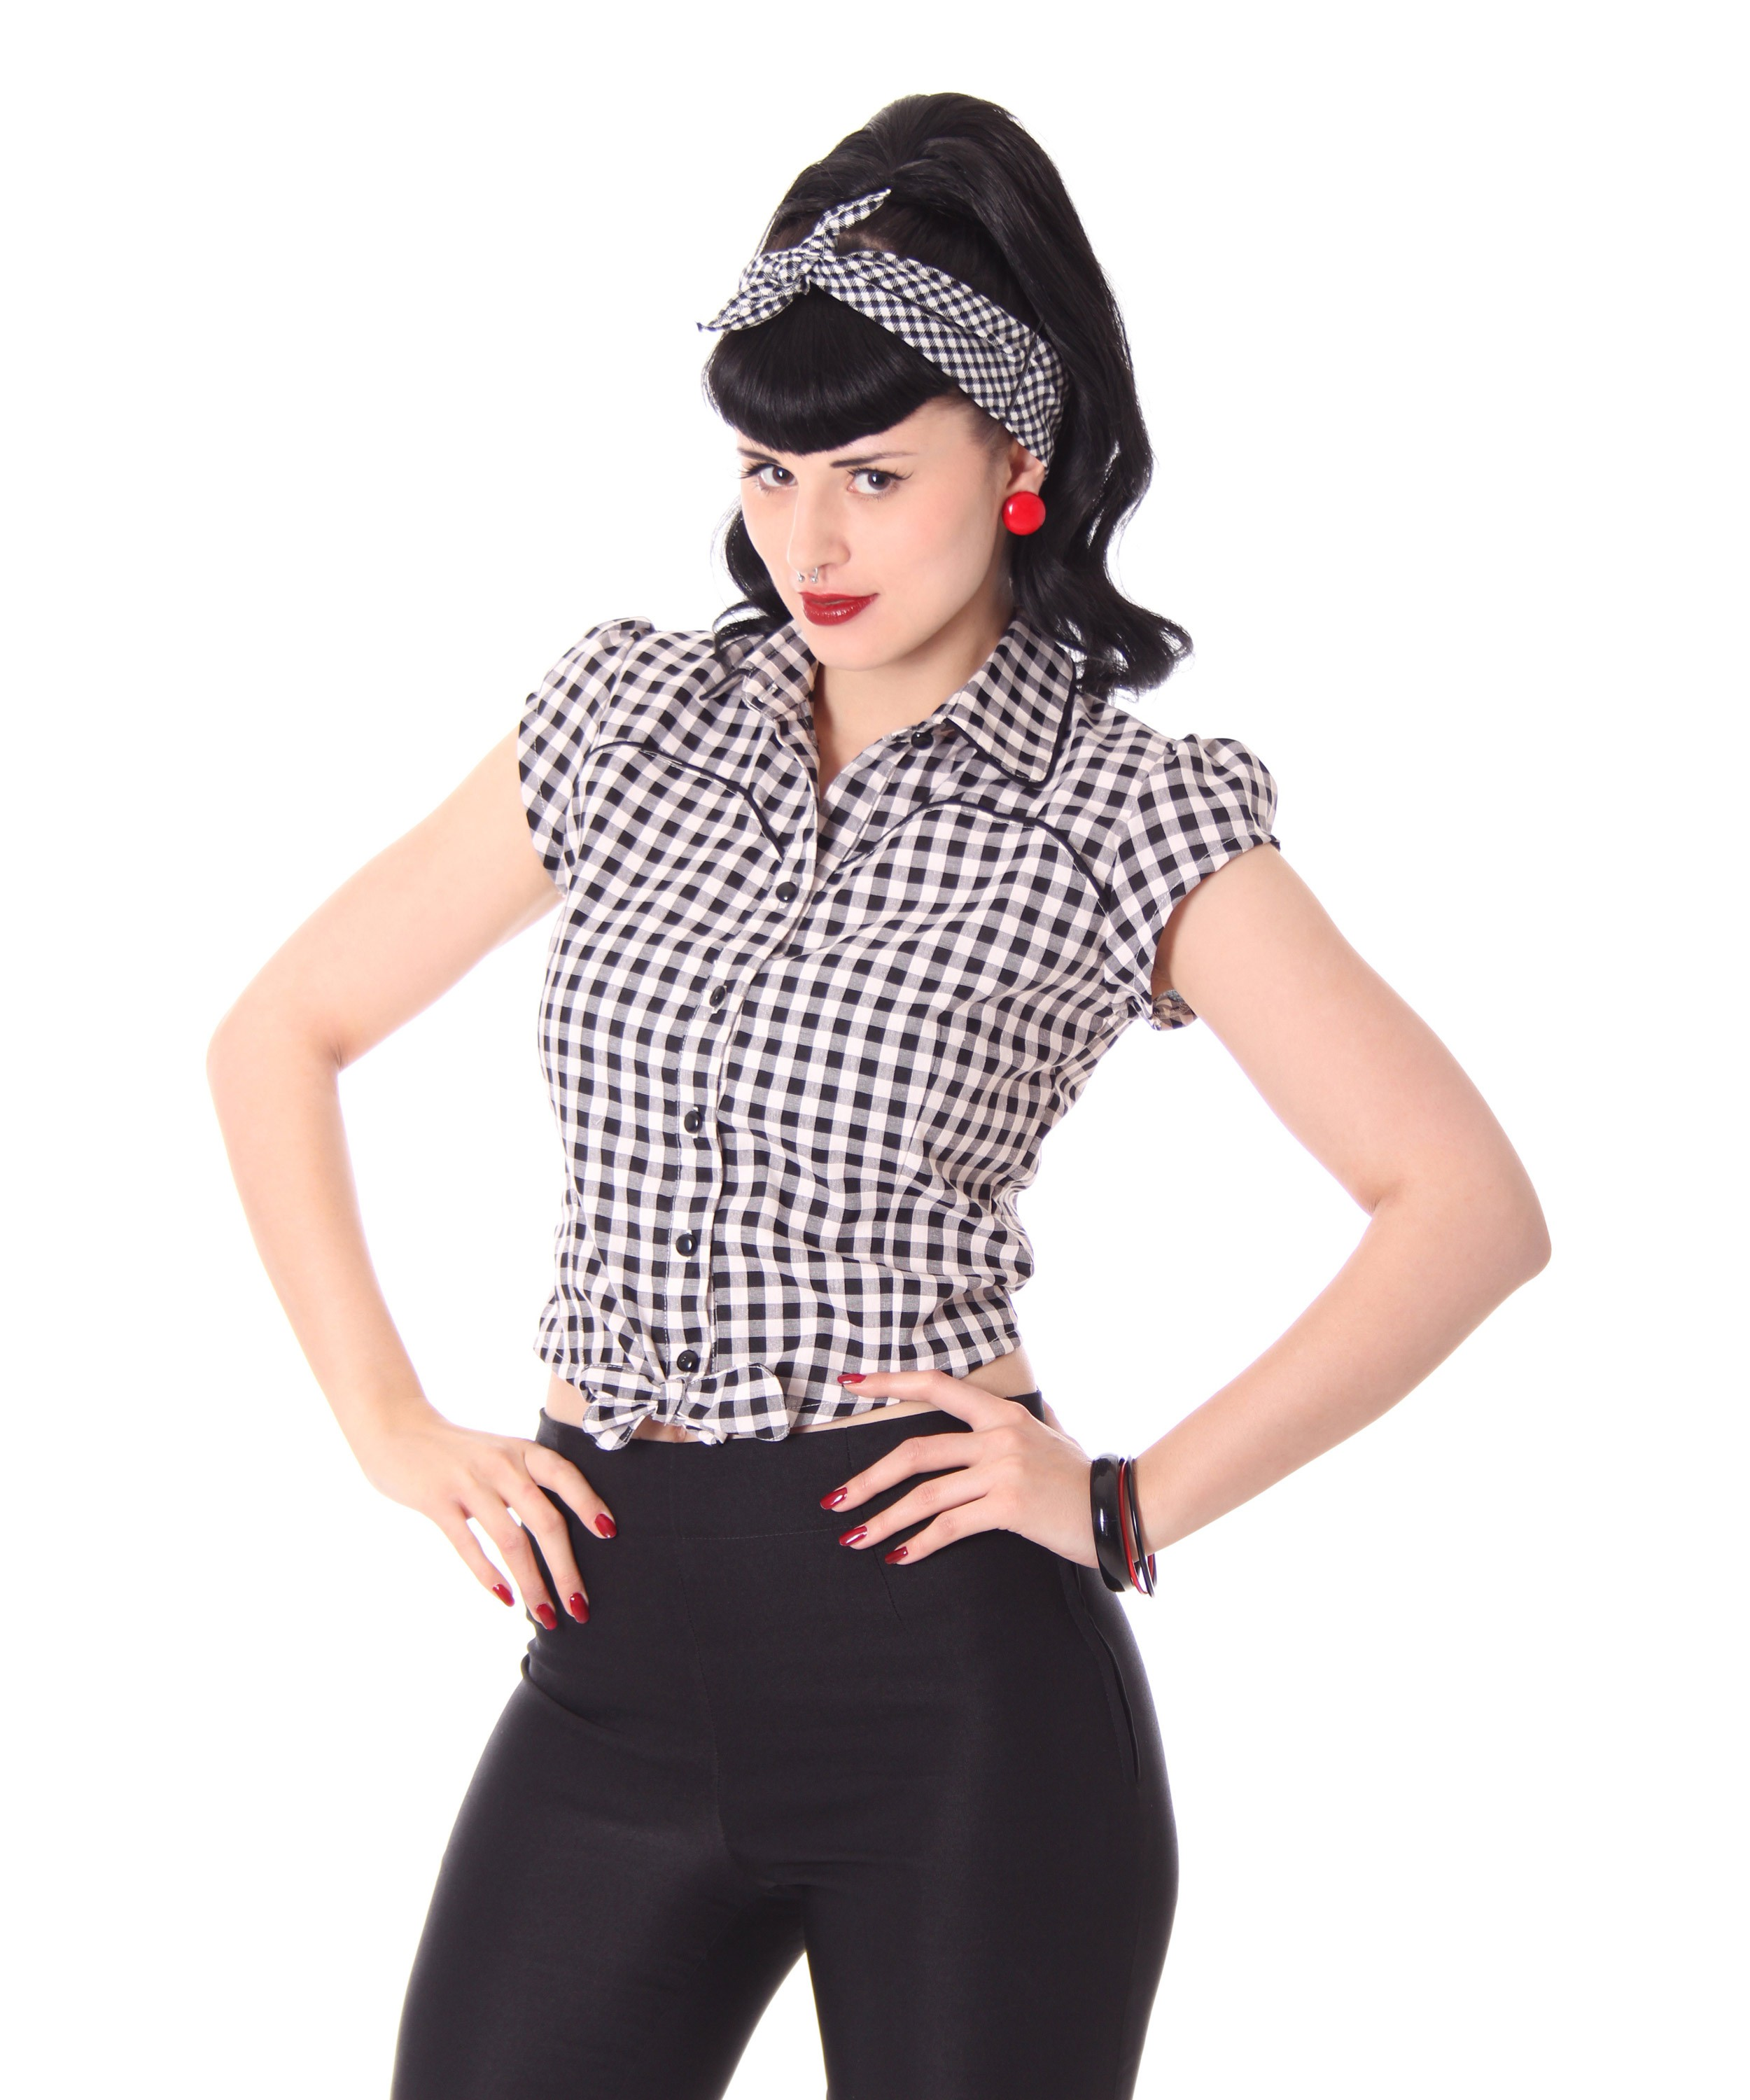 julina 50s pin up style retro gingham binde bluse v. Black Bedroom Furniture Sets. Home Design Ideas